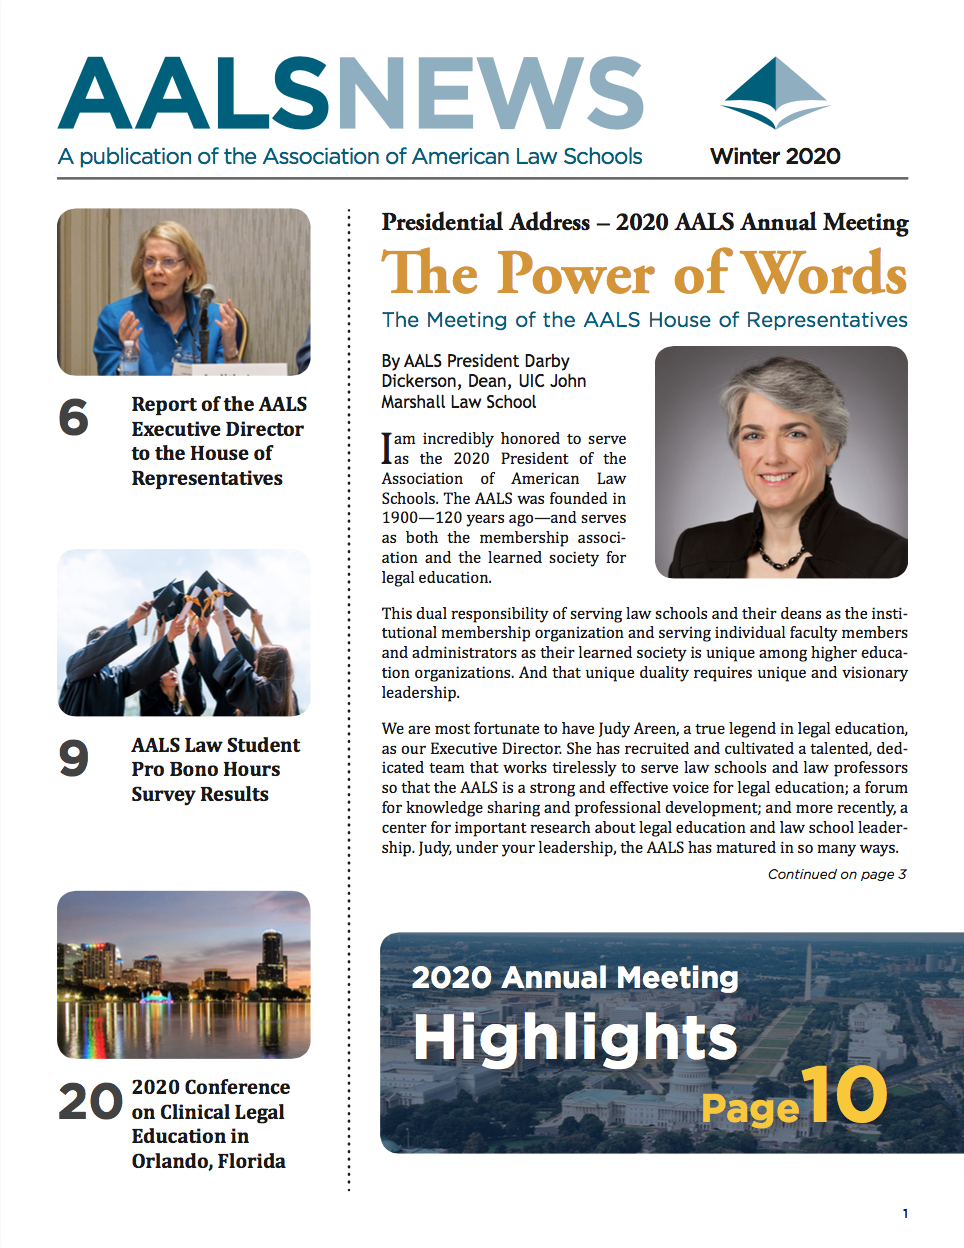 AALS News Cover